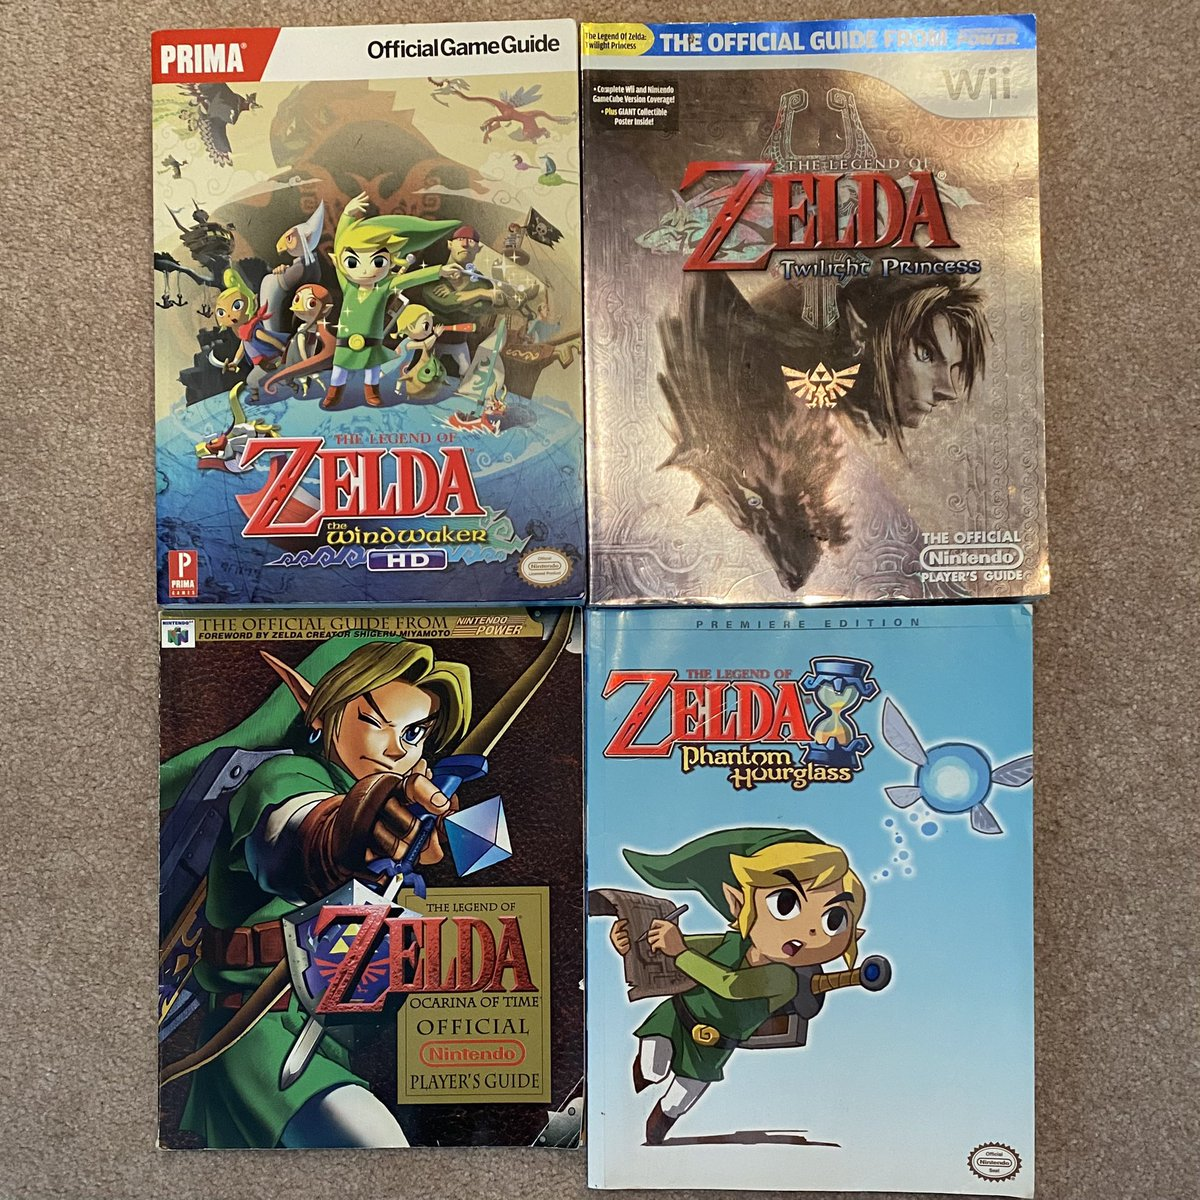 Picked up #Zelda #Windwaker strategy guide today for $10.  I've restricted my guide buying to #Mario #Zelda #Fallout #Pokemon and #FinalFantasy.  Haven't used one yet haha.  Oh well.  Neat to look at.  And this was a #WiiU guide which I don't see often.  #Nintendo #NintendoSwitch